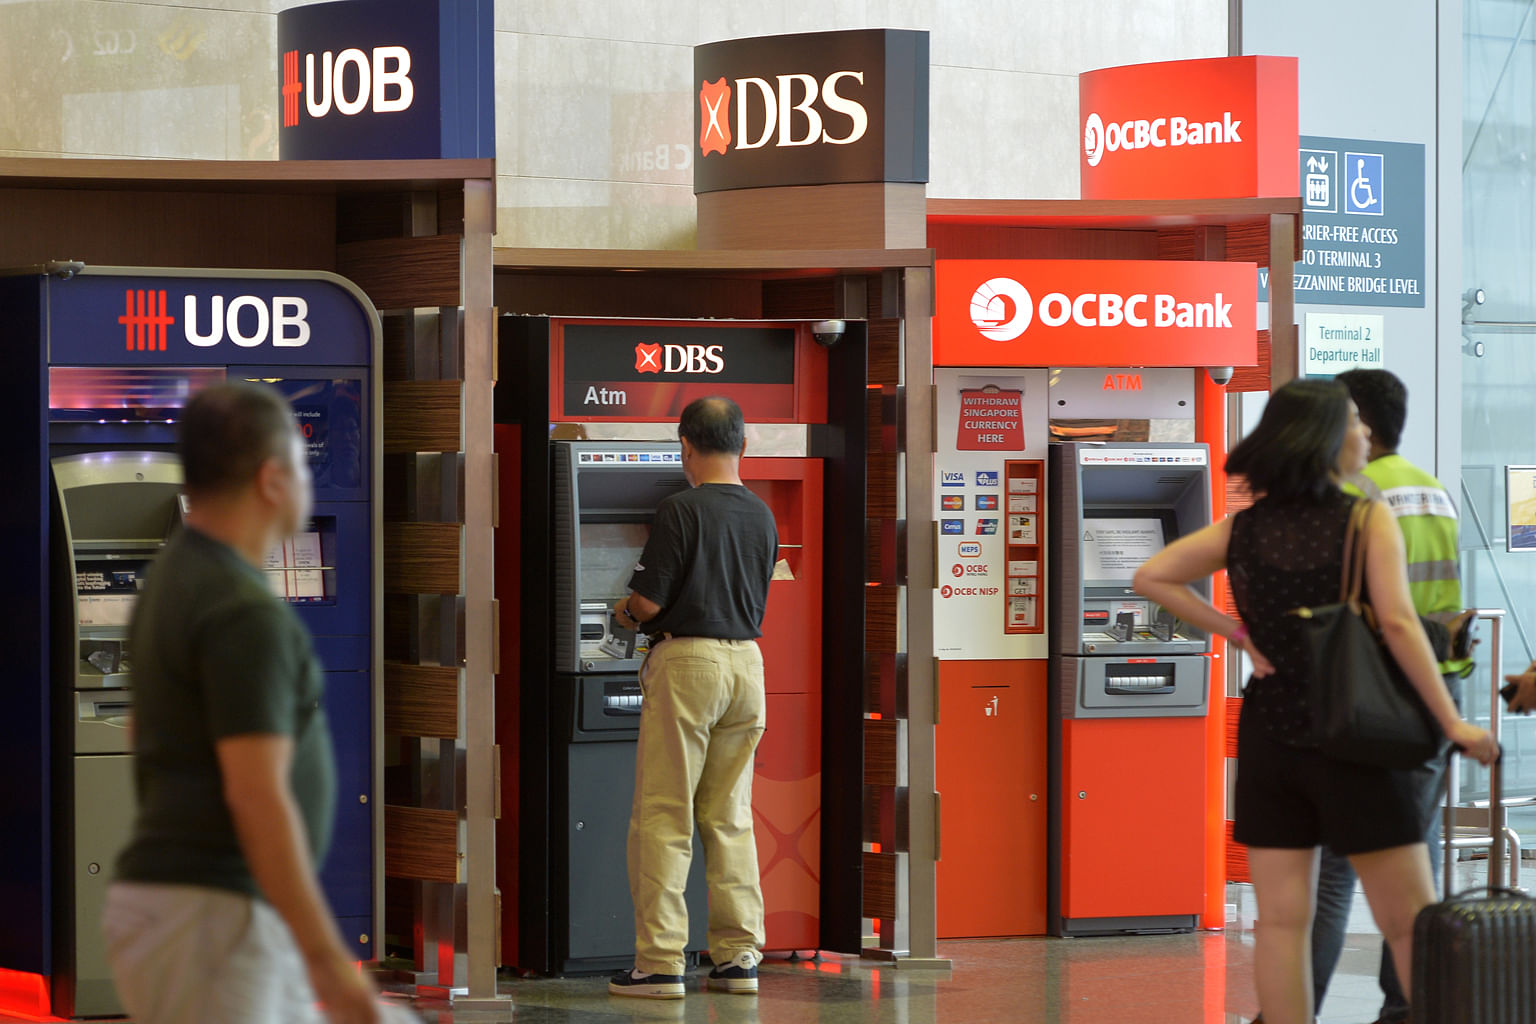 The uncertainties in the struggling oil and gas sector aside, loans growth and margin improvement will be the factors DBS, OCBC and UOB are counting on for growth this year.